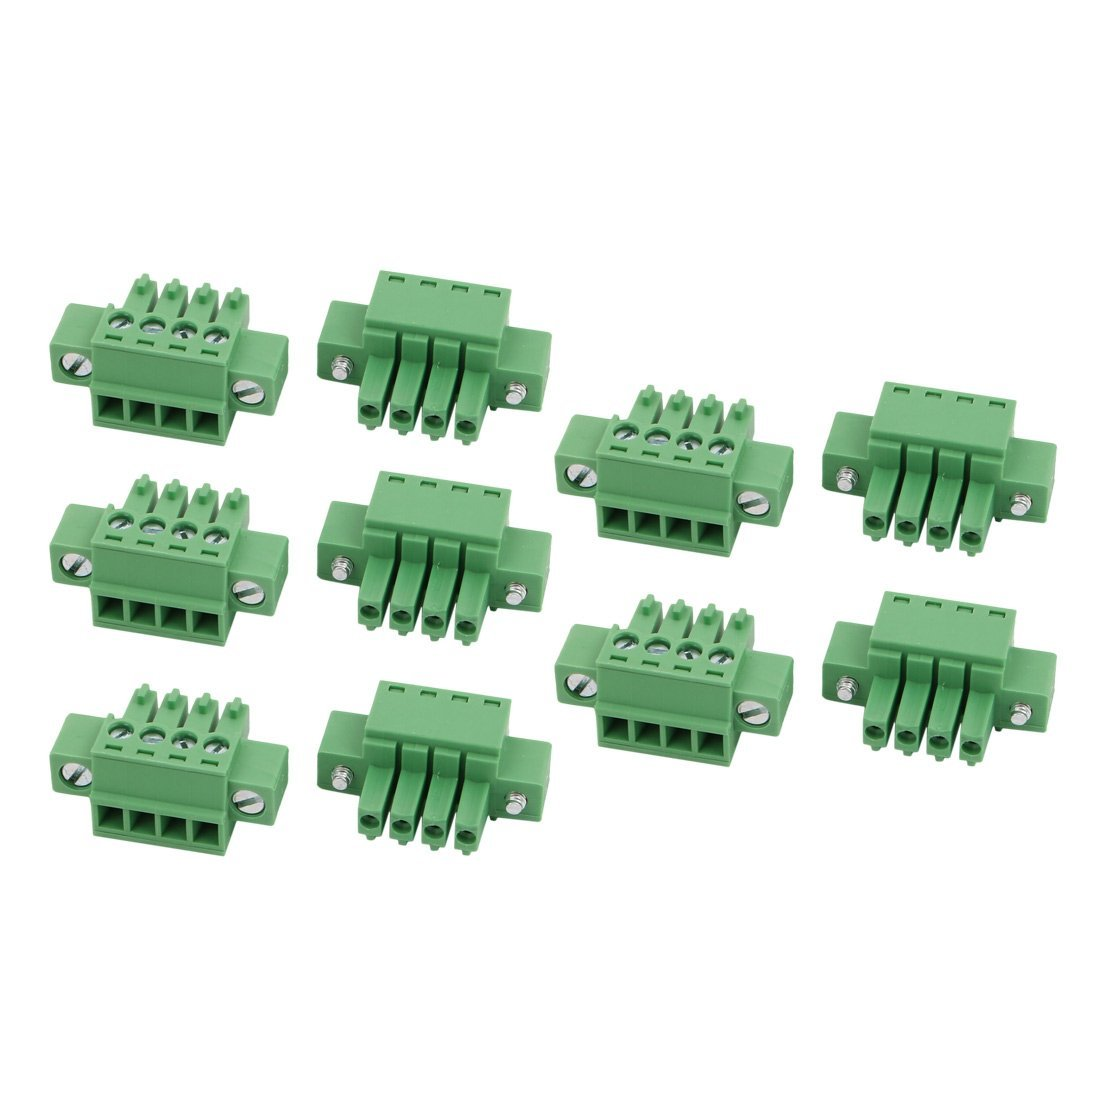 uxcell 10 Pcs LC1M AC300V 8A 3.5mm Pitch 4P PCB Mount Terminal Block Wire Connector